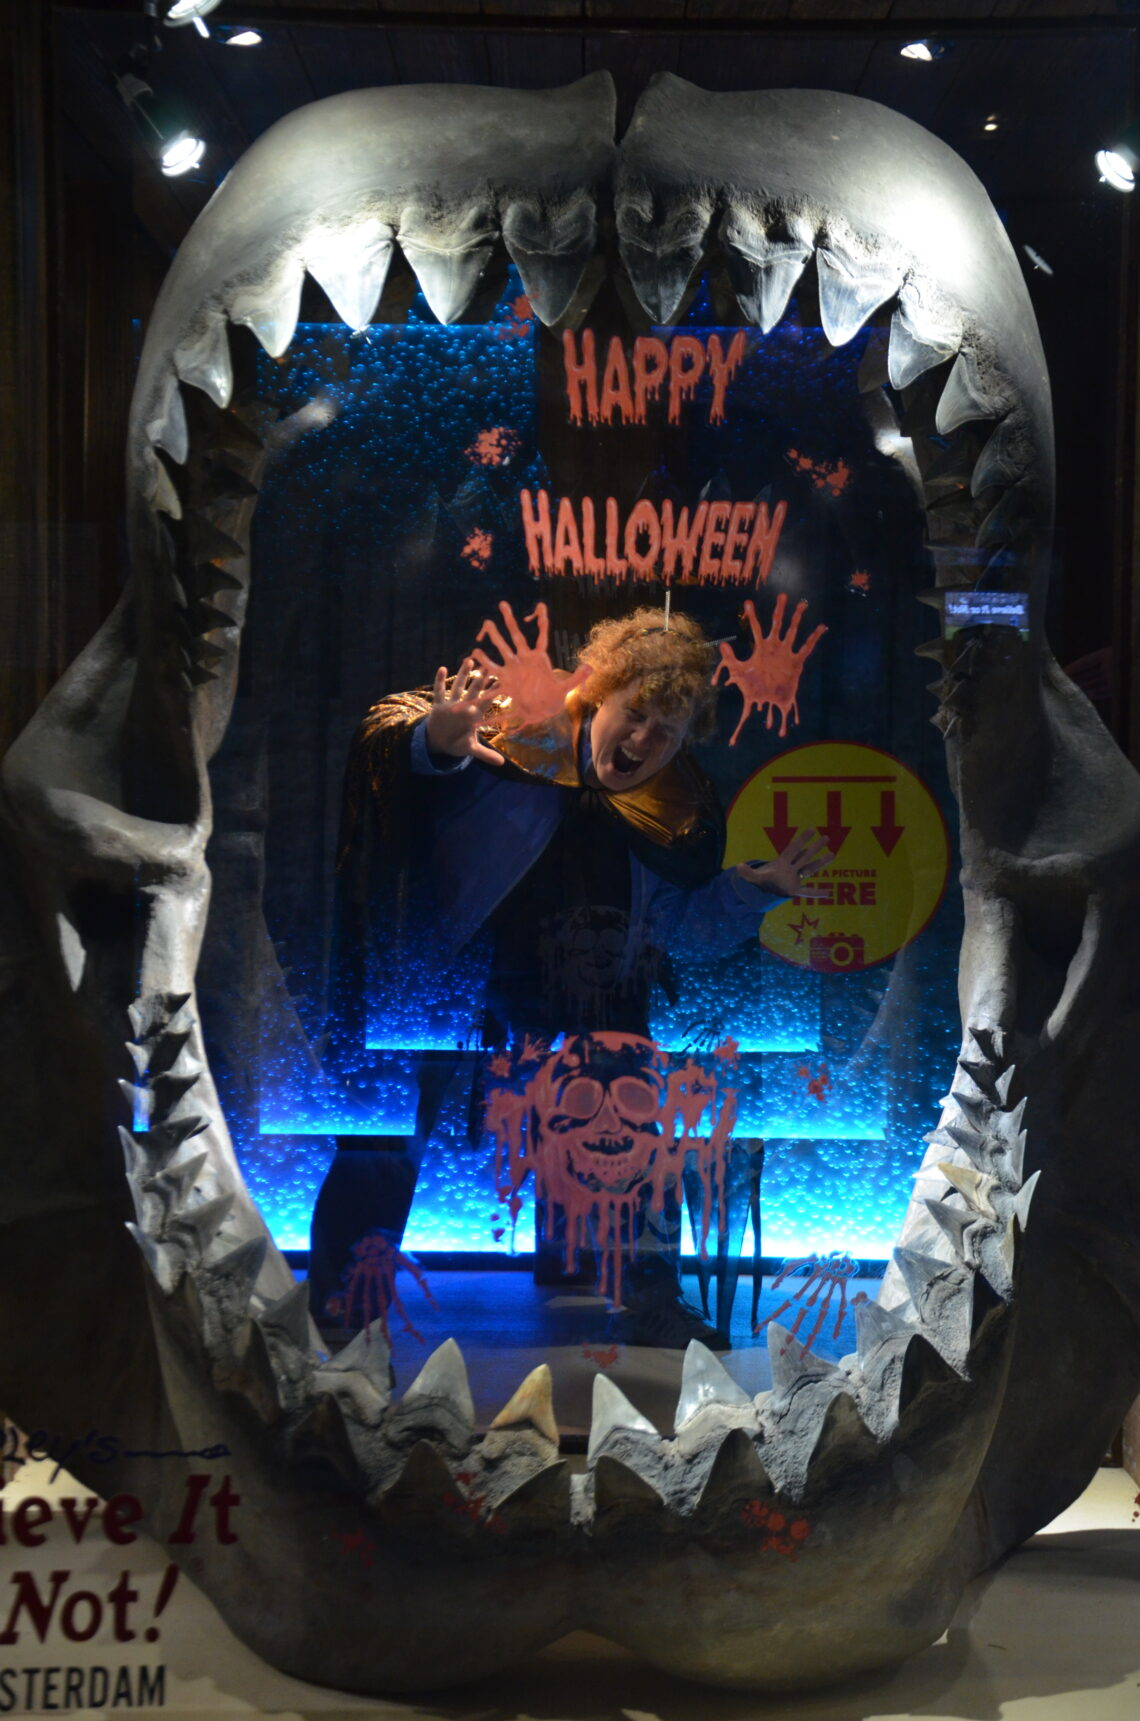 Happy Halloween! on a glass plate , where Cosette is standing behind, in between jaws teeth.